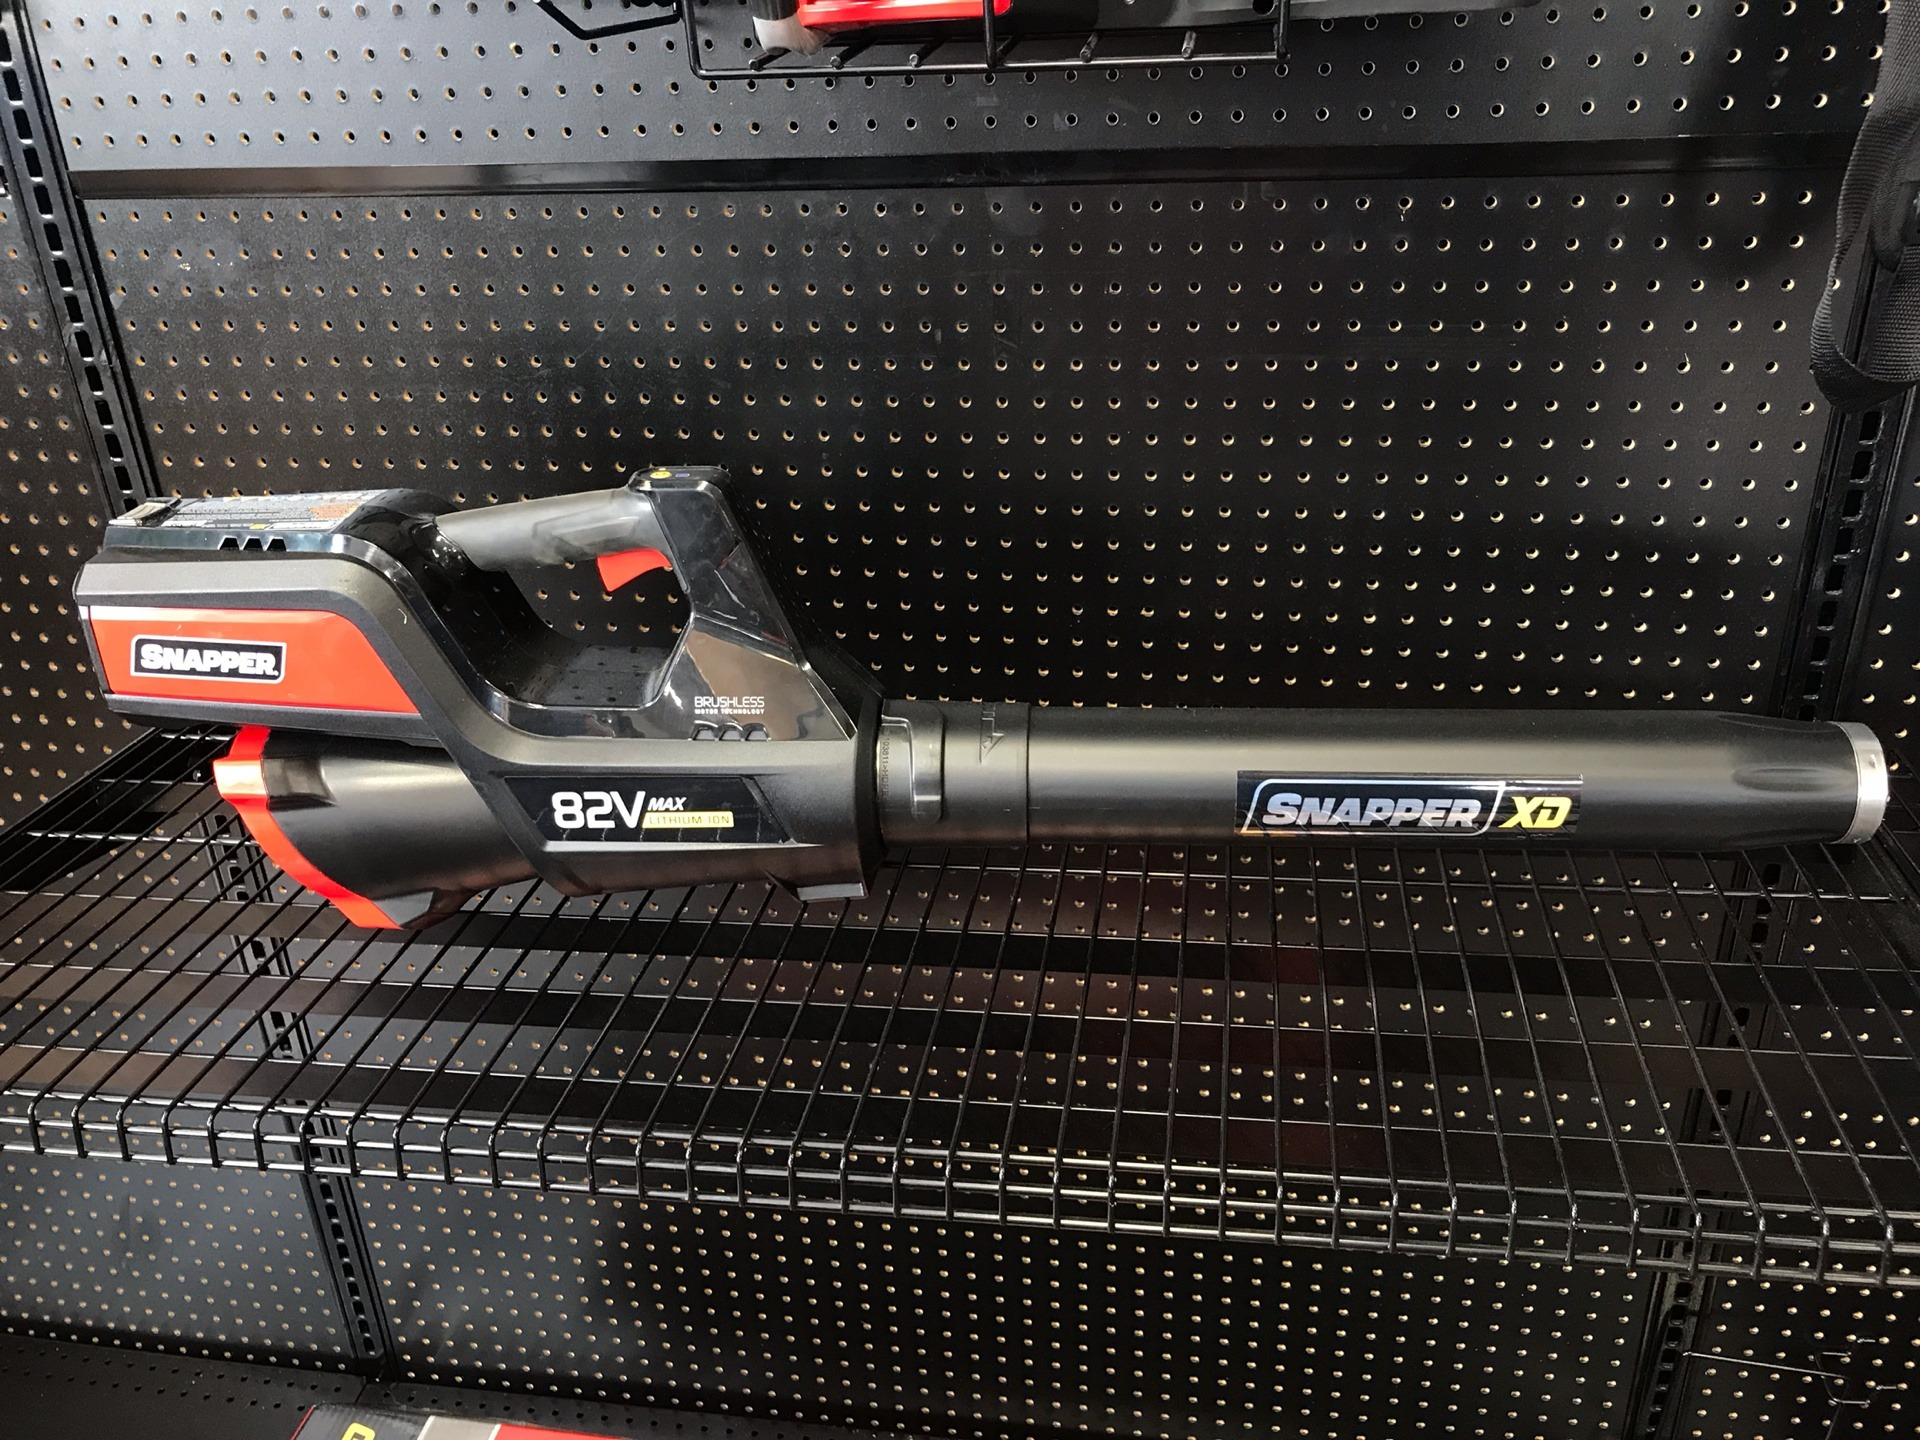 Snapper XD 82V Max Lithium-Ion Cordless Leaf Blower (SXDBL82K) in Evansville, Indiana - Photo 4